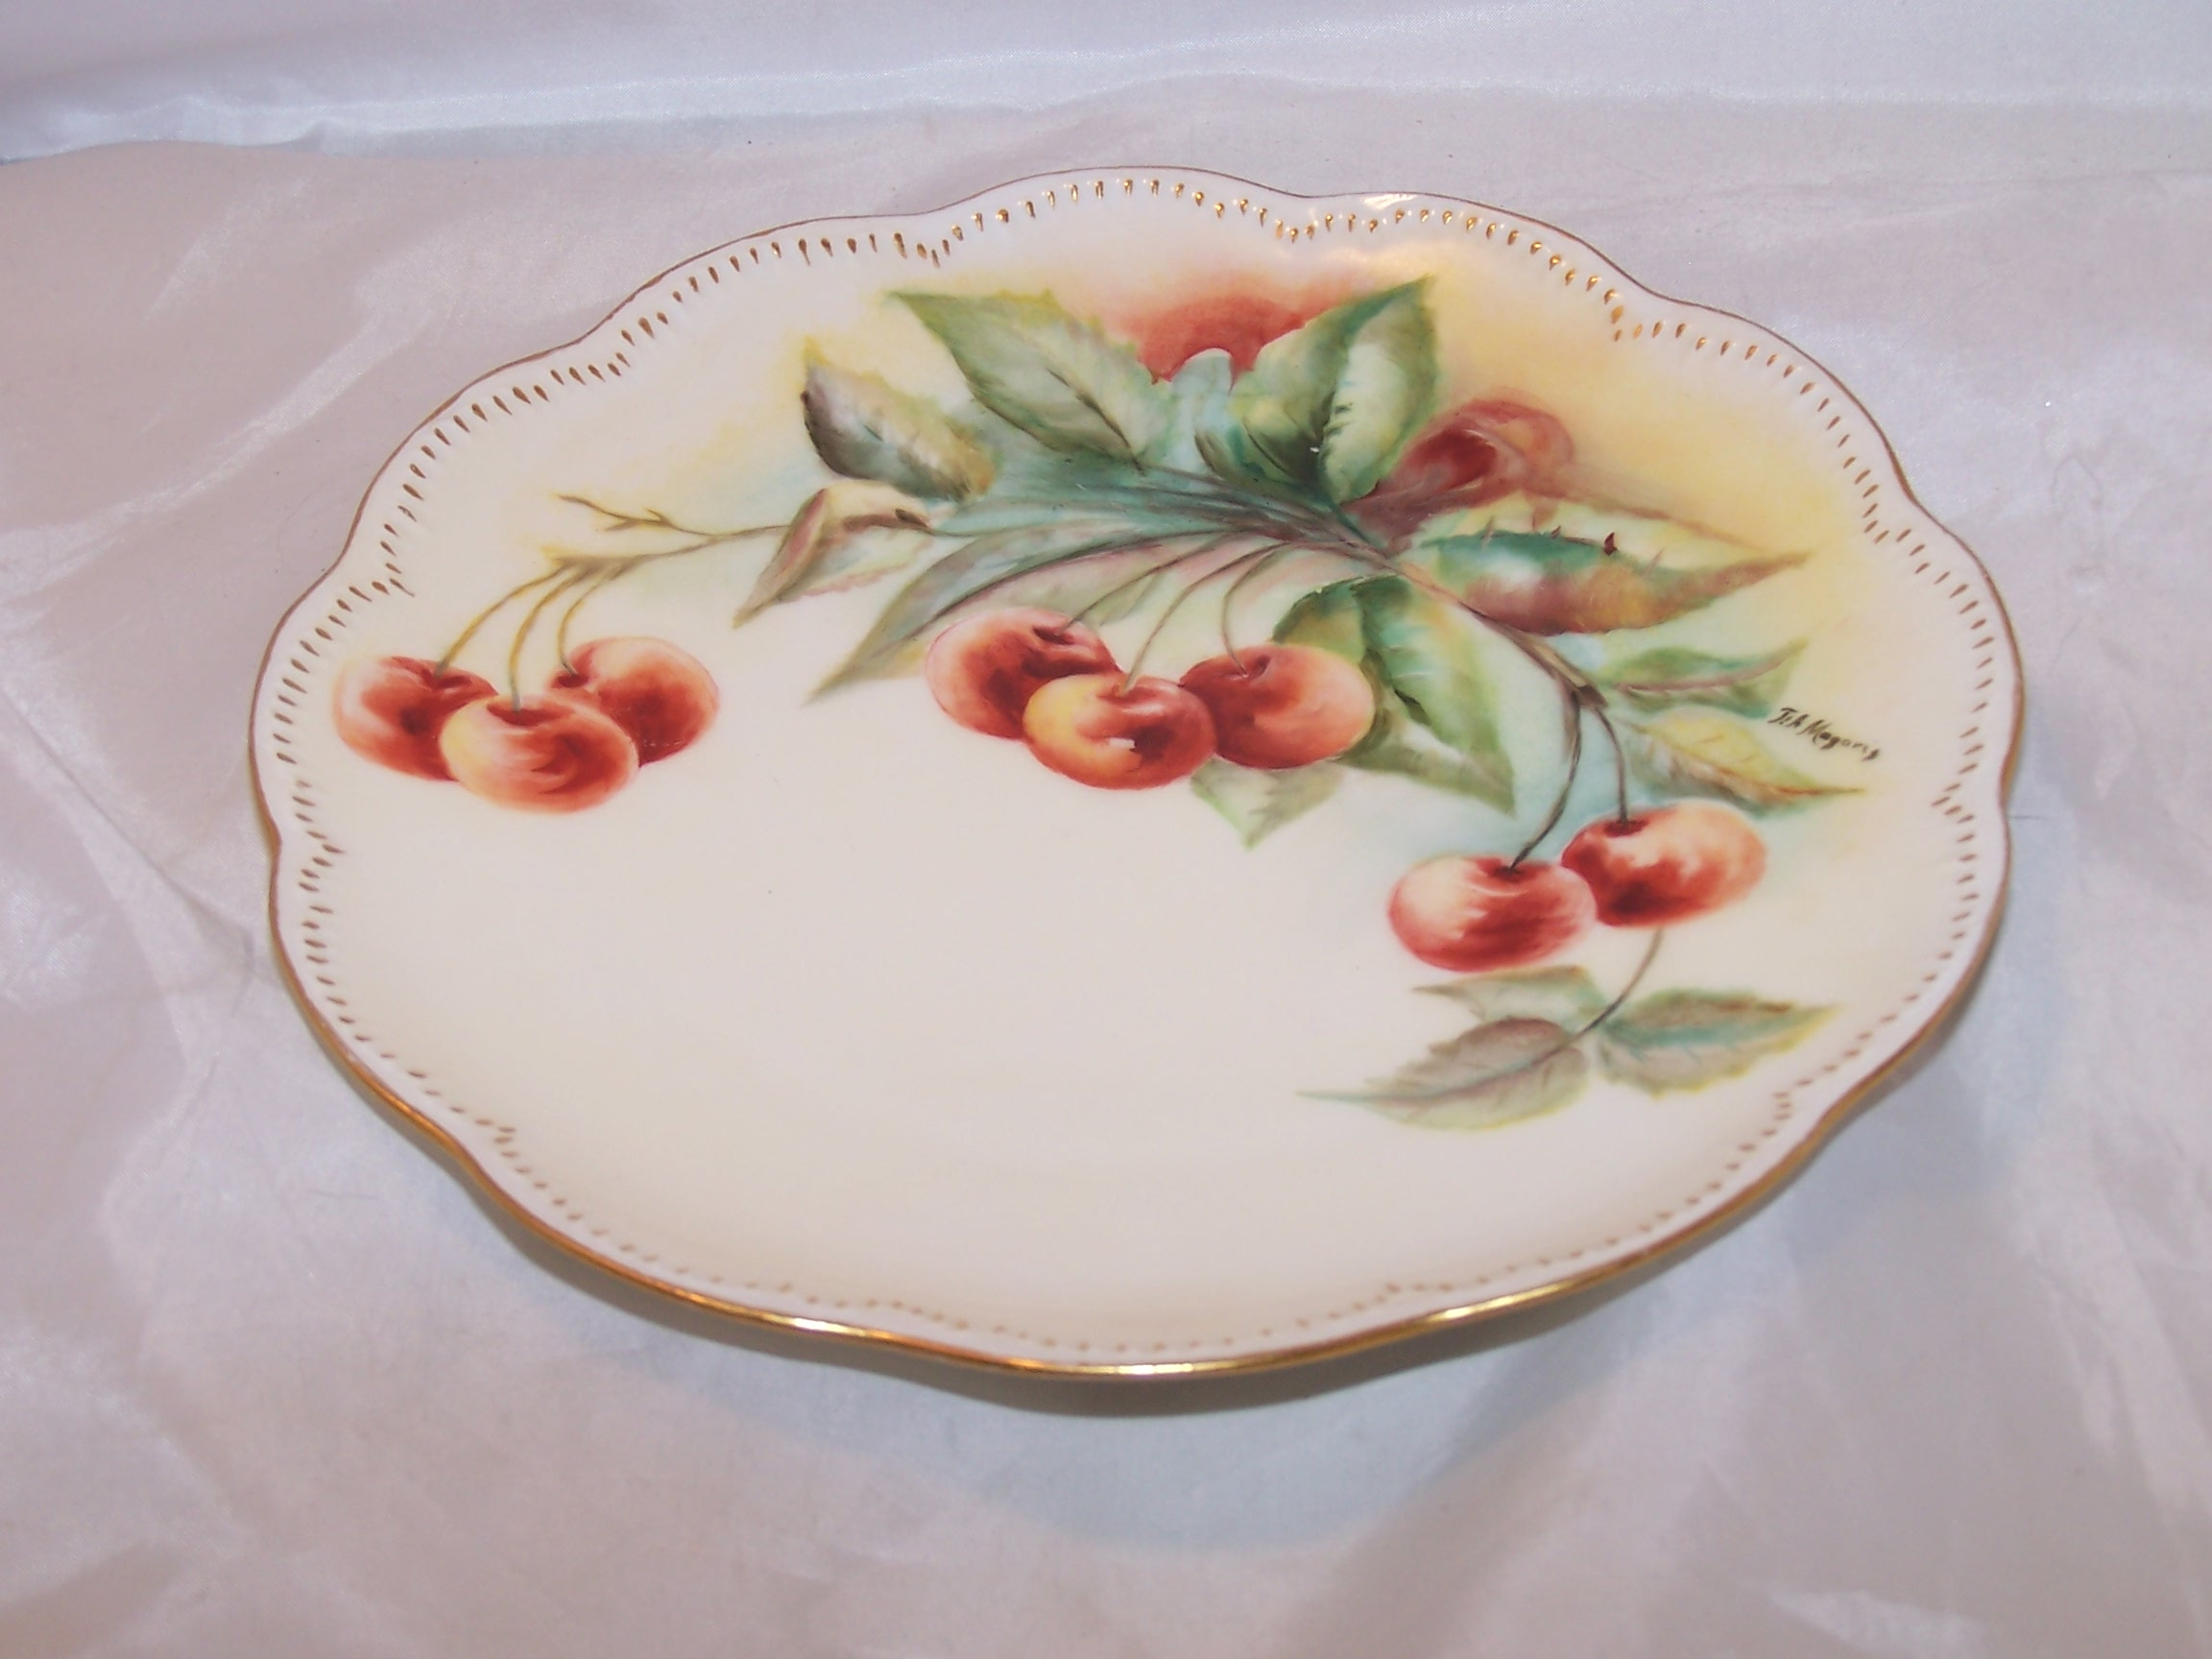 Image 3 of Haviland France Cherry Branch Plate, Artist Signed Magoris